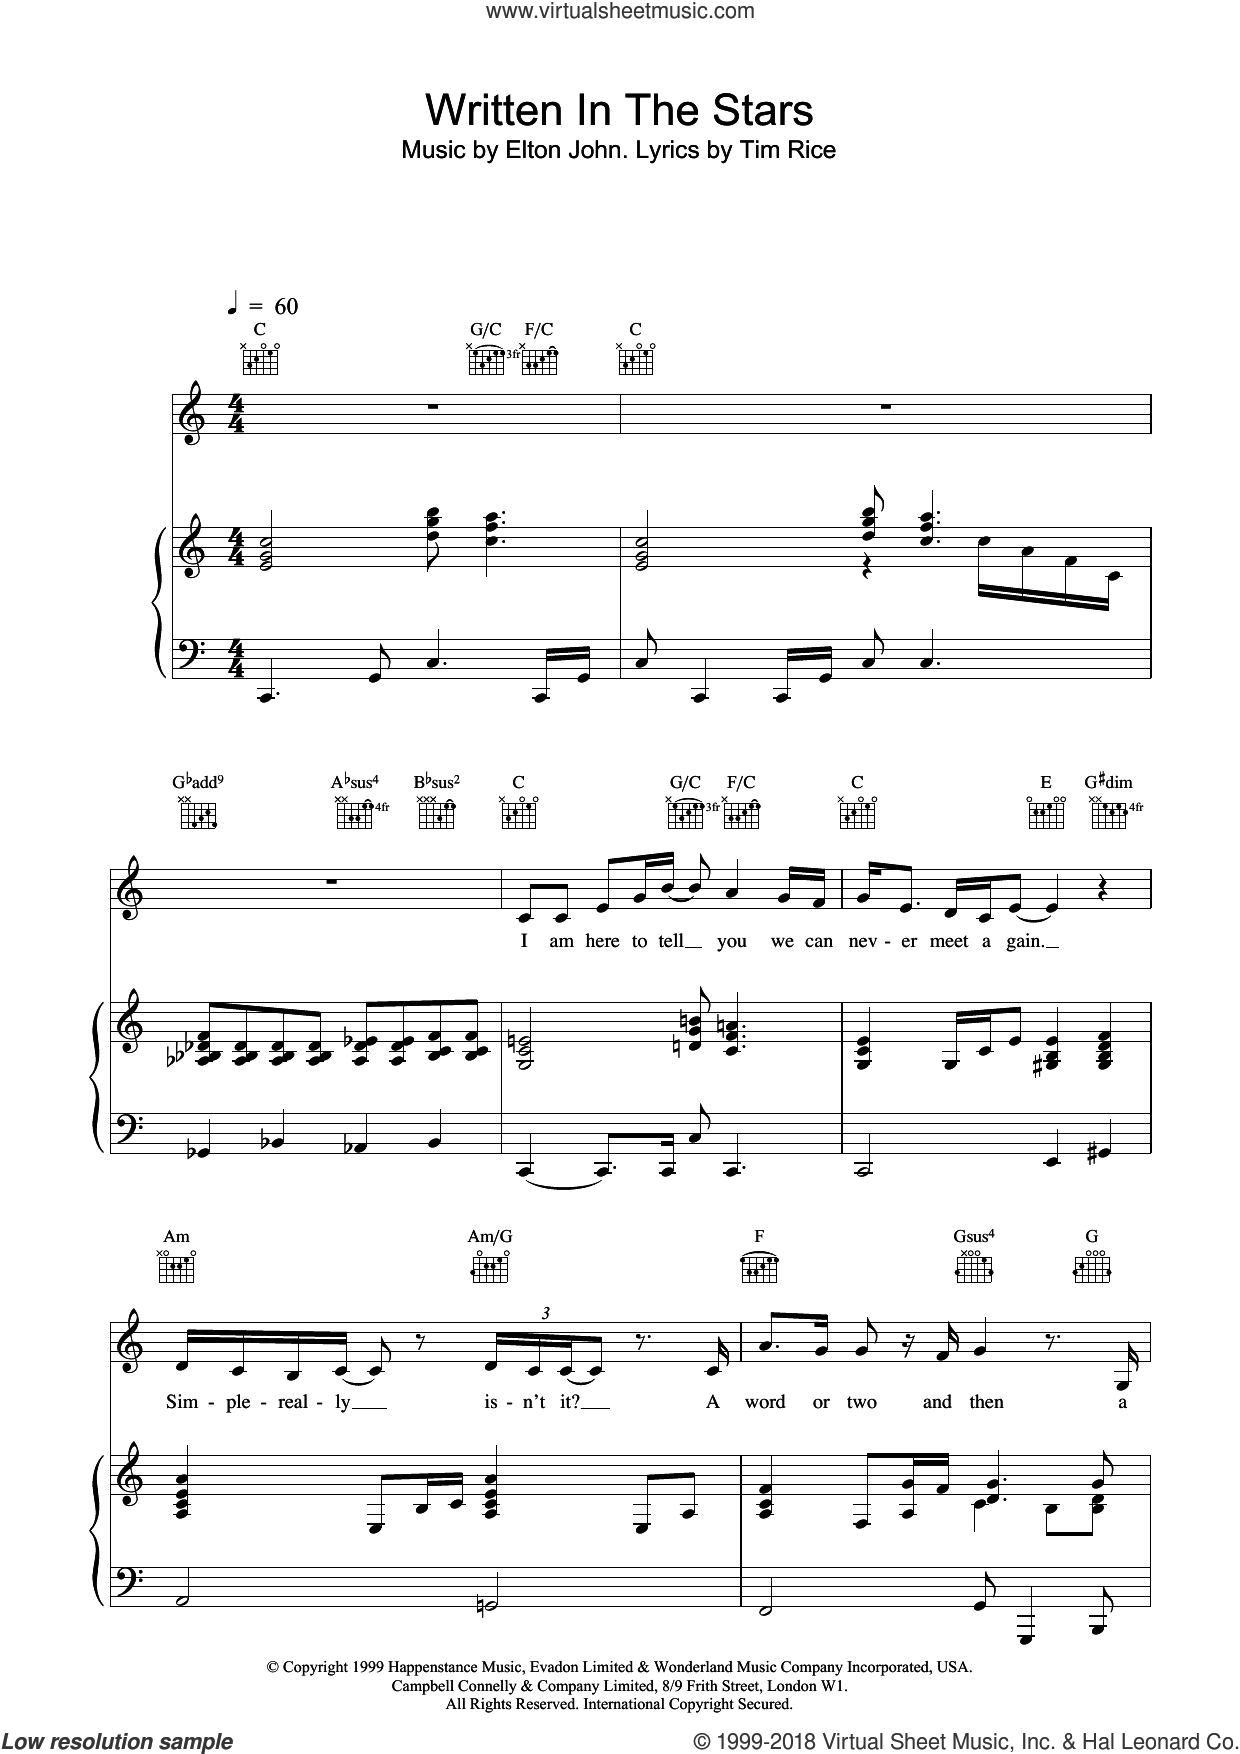 Written In The Stars sheet music for voice, piano or guitar by Elton John, LeAnn Rimes and Tim Rice, intermediate skill level